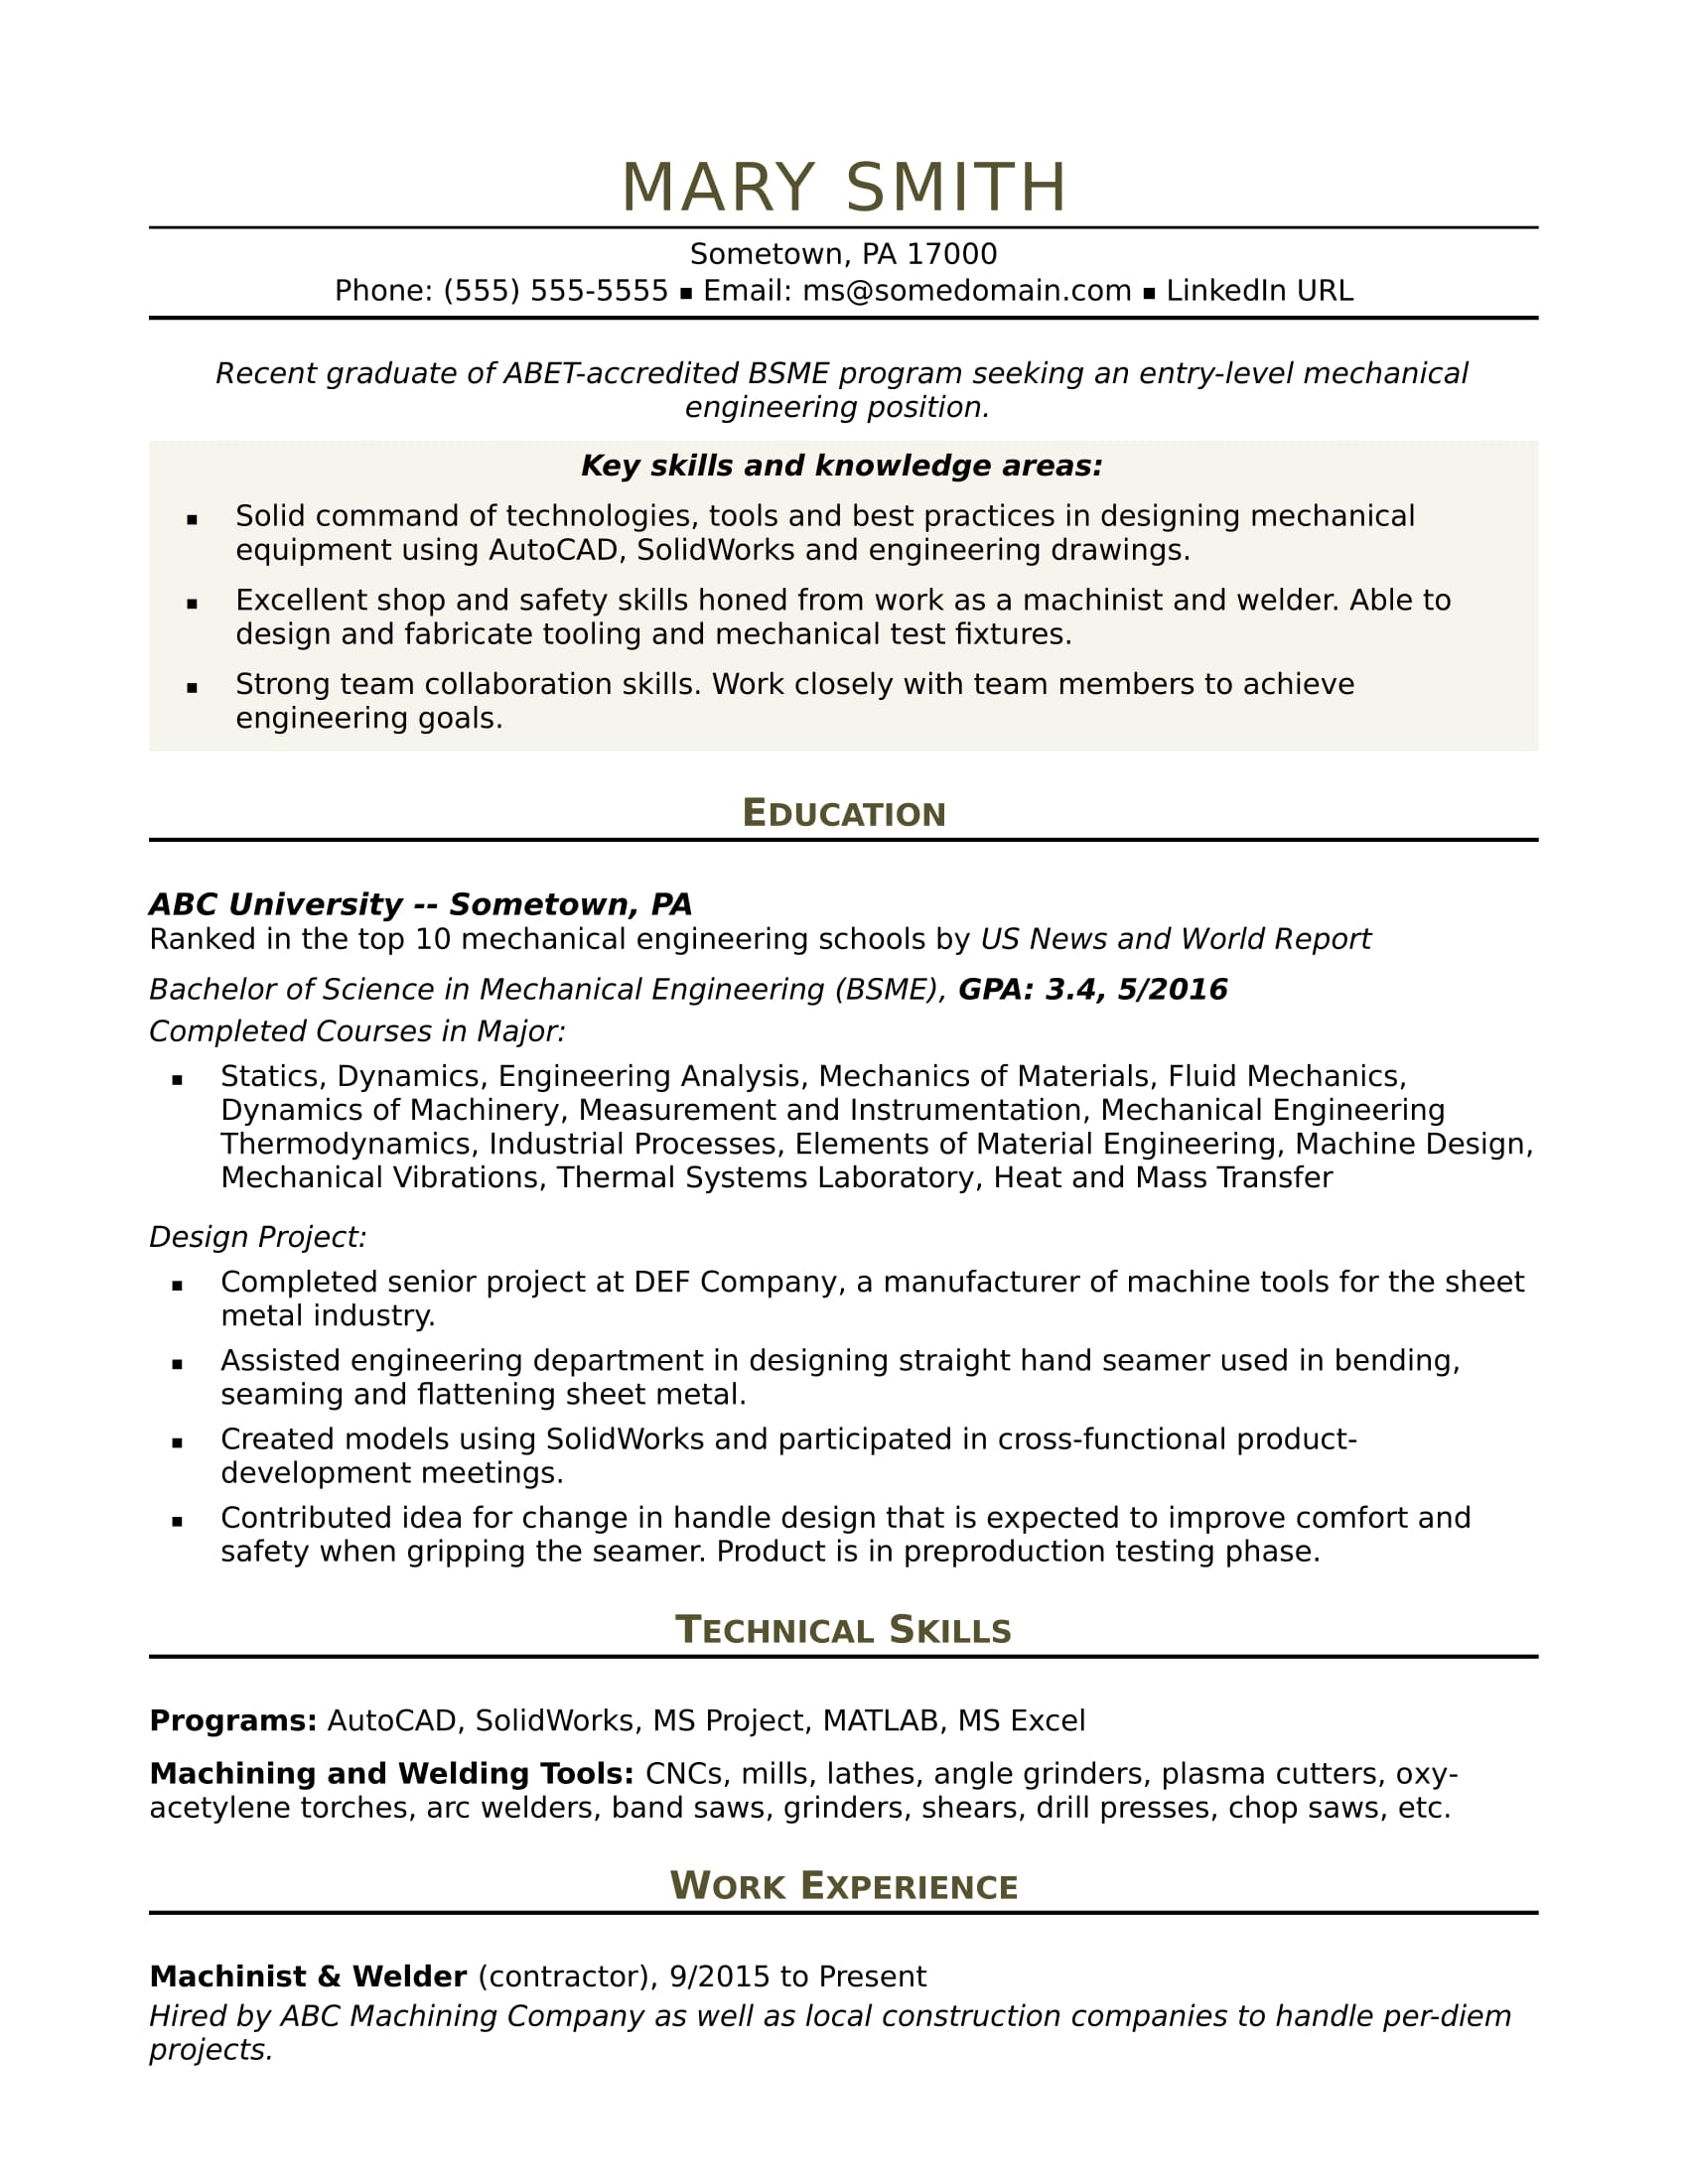 sample resume for an entry level mechanical engineer monster systems examples warehouse Resume Entry Level Systems Engineer Resume